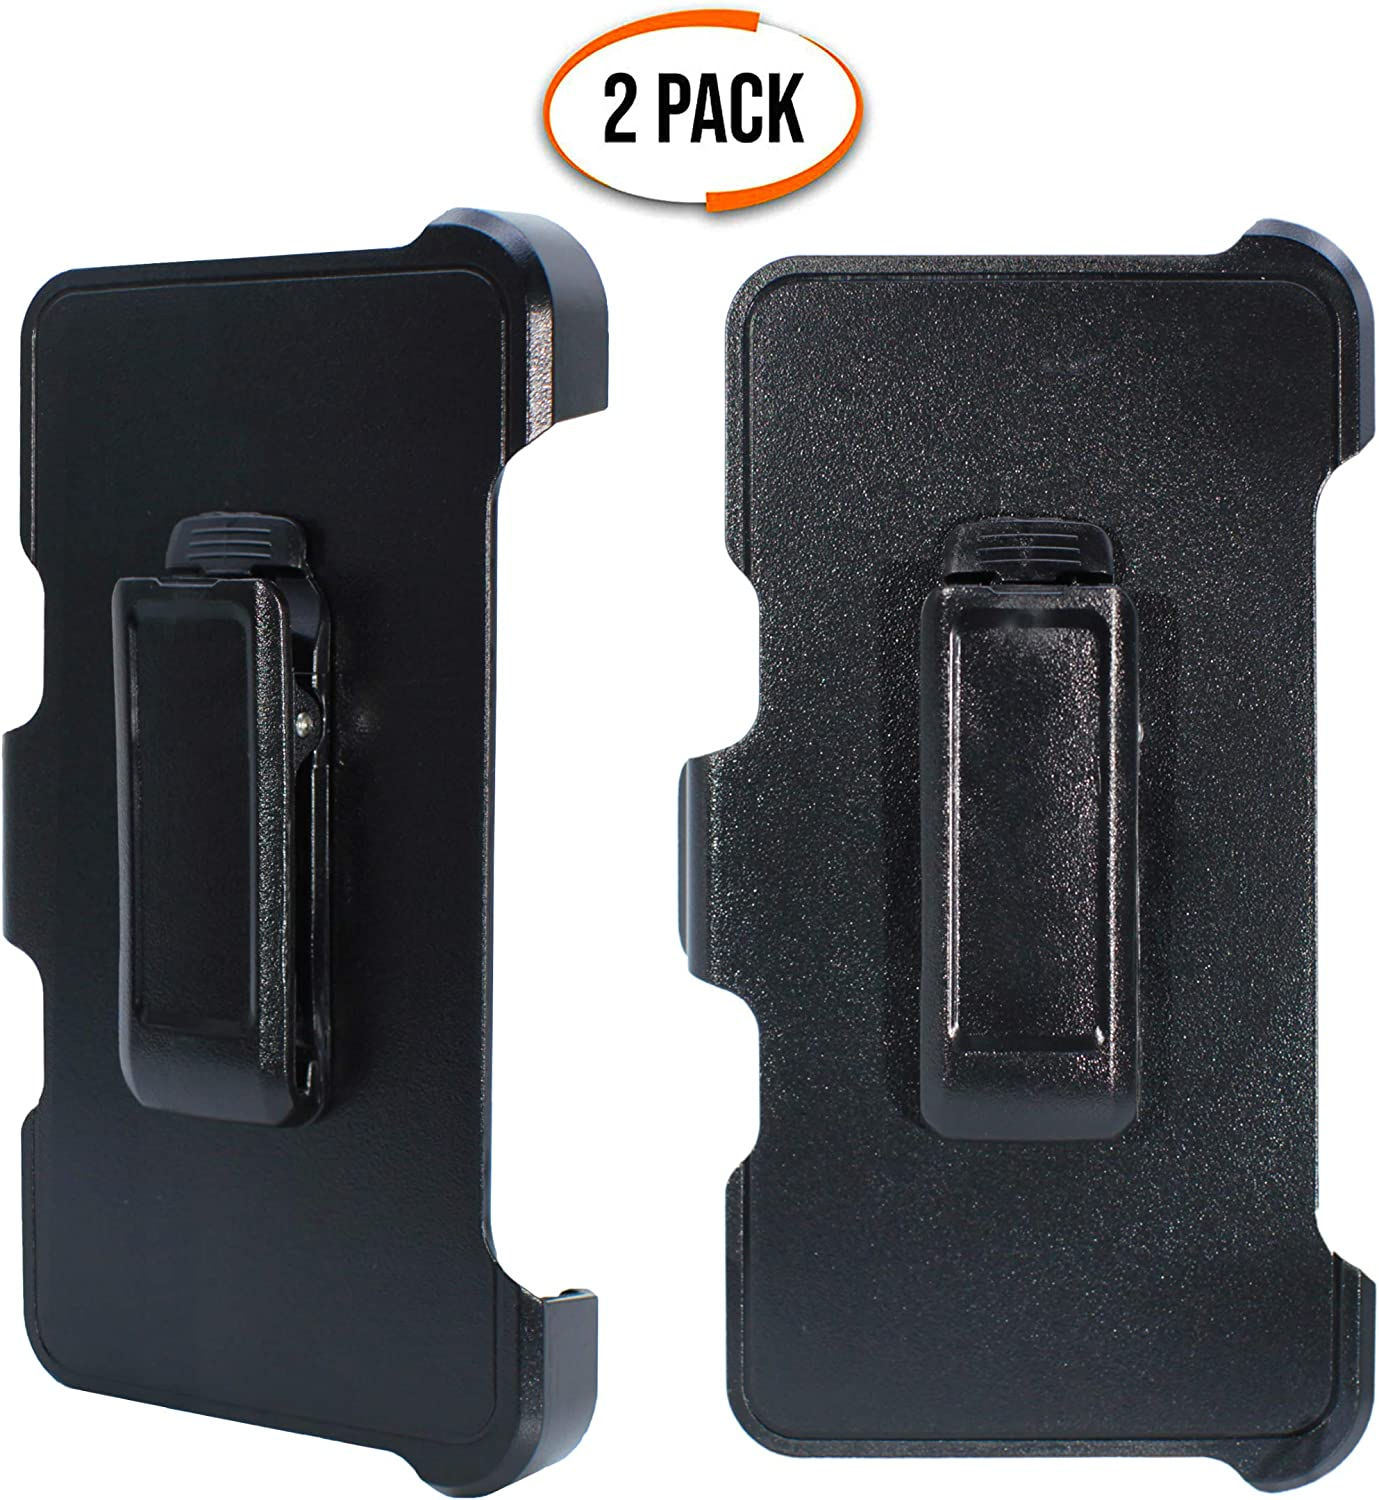 """2 Pack iPhone 6 4.7 iPhone 6S WallSkiN Turtle Series Replacement Belt Clip Holster /""""Compatible with OtterBox Defender Series Case/"""" Hands-Free Kickstand for Apple iPhone 8 iPhone 7"""